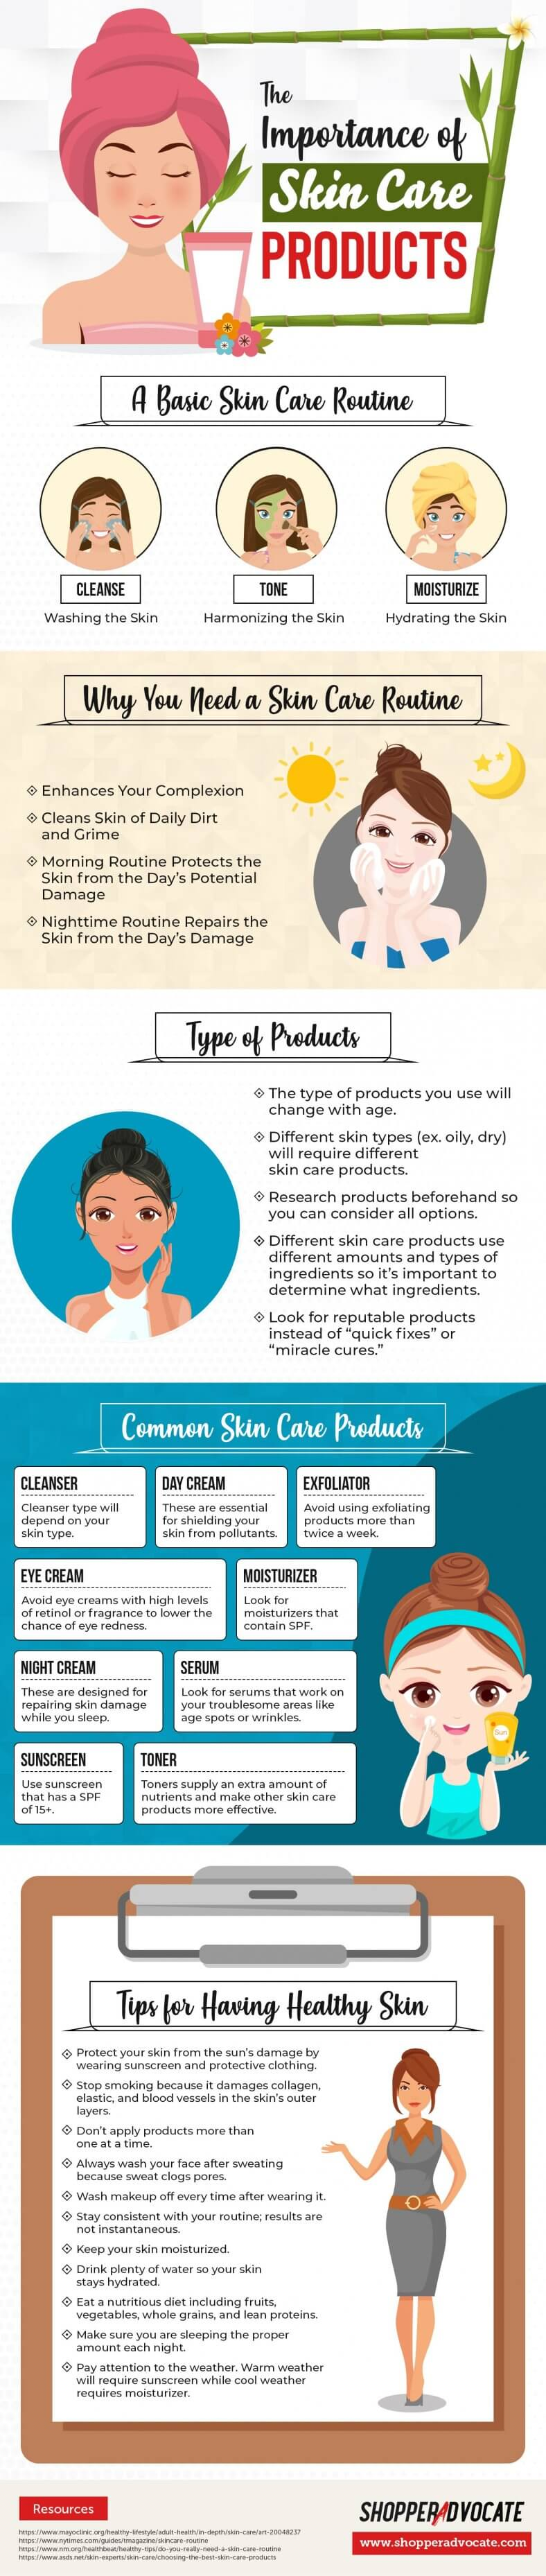 The Importance of Skin Care Products